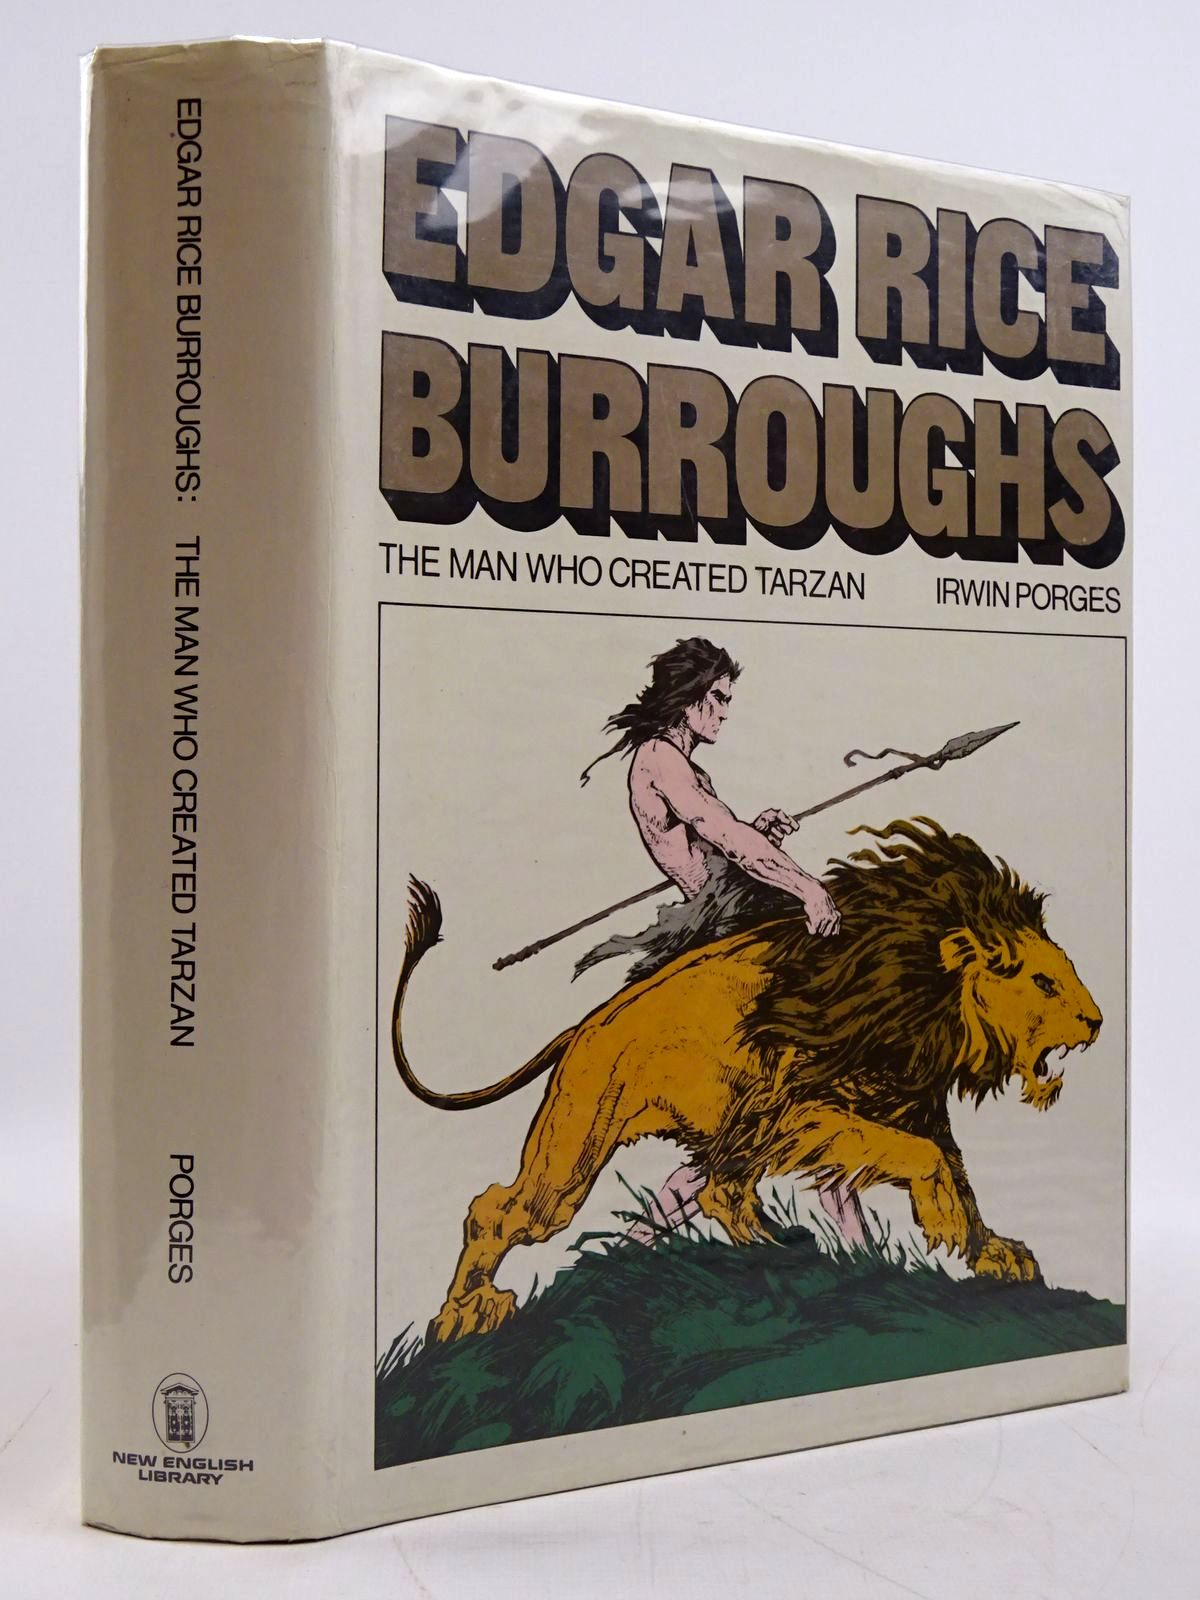 Photo of EDGAR RICE BURROUGHS written by Porges, Irwin published by New English Library (STOCK CODE: 2131433)  for sale by Stella & Rose's Books